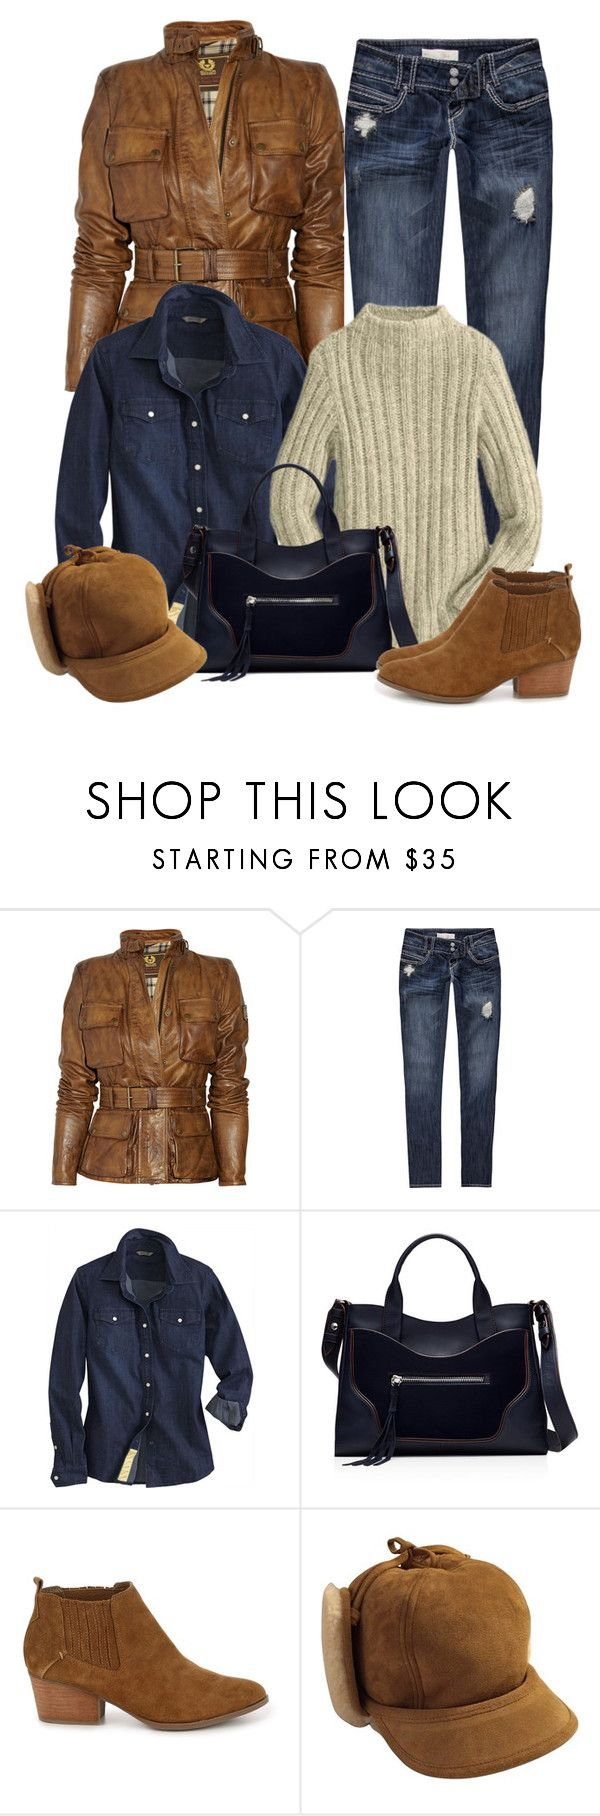 """Untitled #1264"" by gallant81 ❤ liked on Polyvore featuring Belstaff, Almost Famous, Elizabeth and James and Golden Goose"